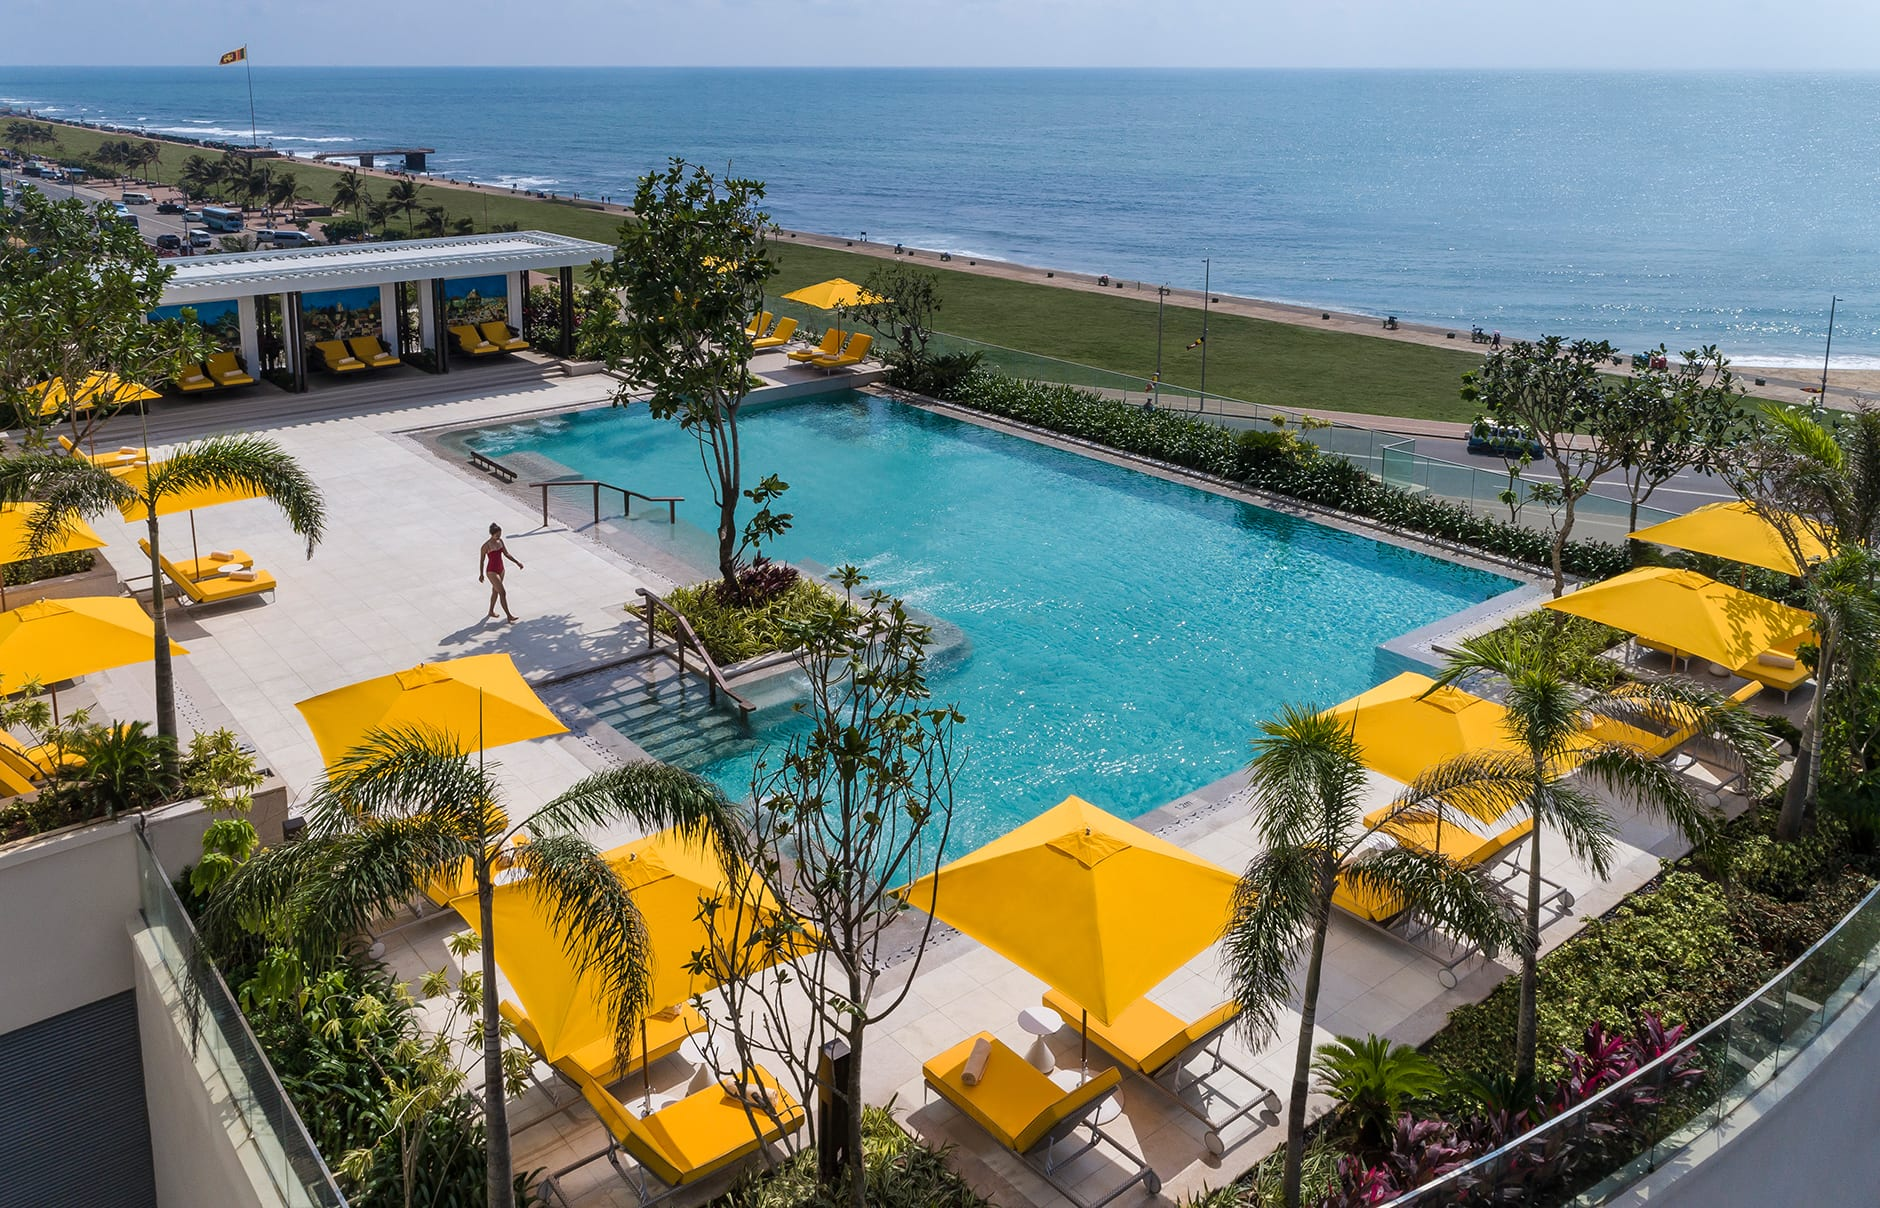 Swimming pool. Shangri-La Hotel Colombo, Sri Lanka. Hotel Review by TravelPlusStyle. Photo © Shangri-La